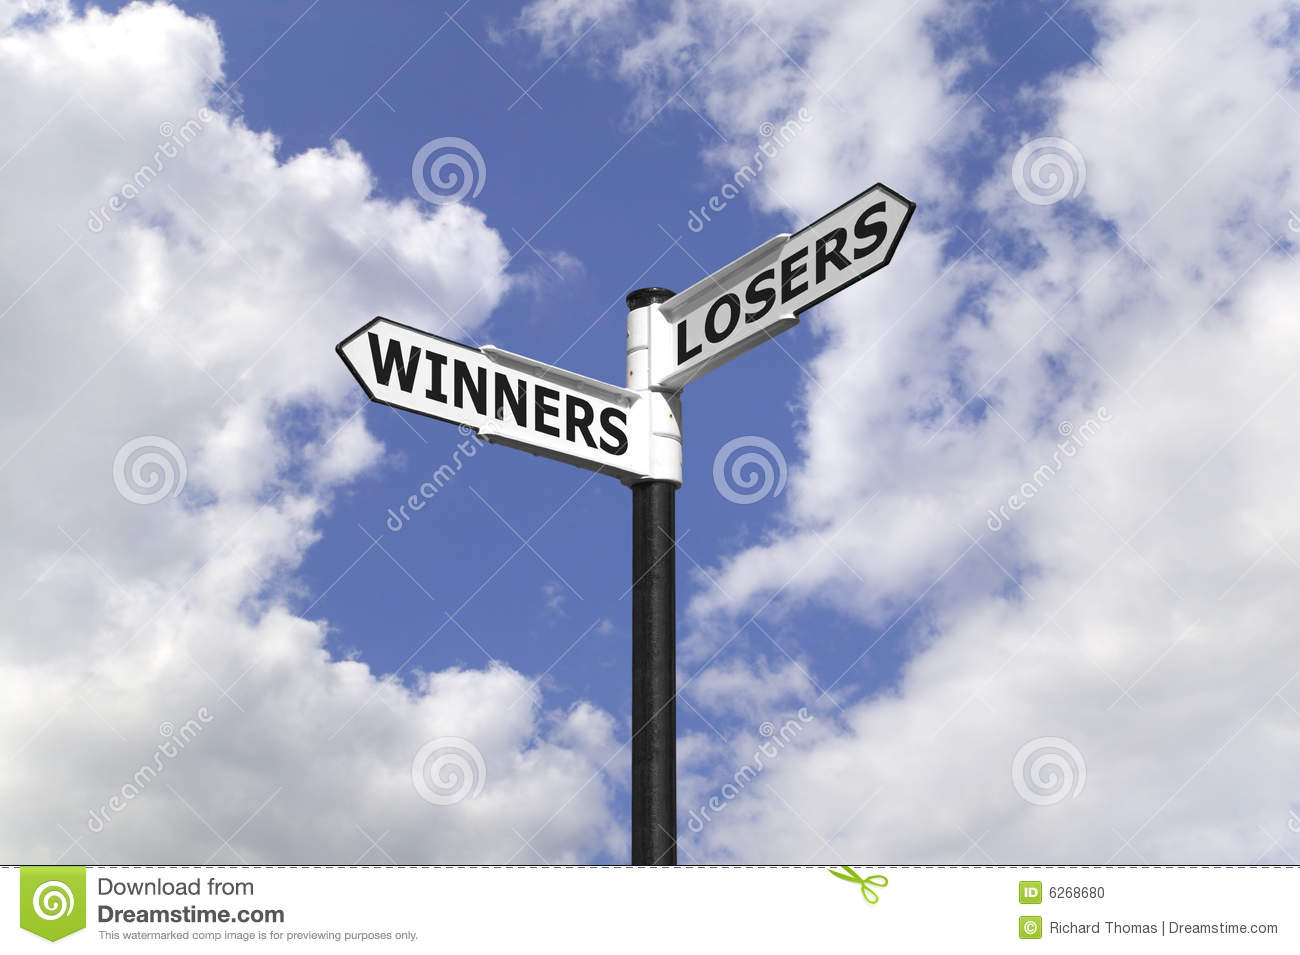 Winners And Losers On A Signpost Against A Blue Cloudy Sky